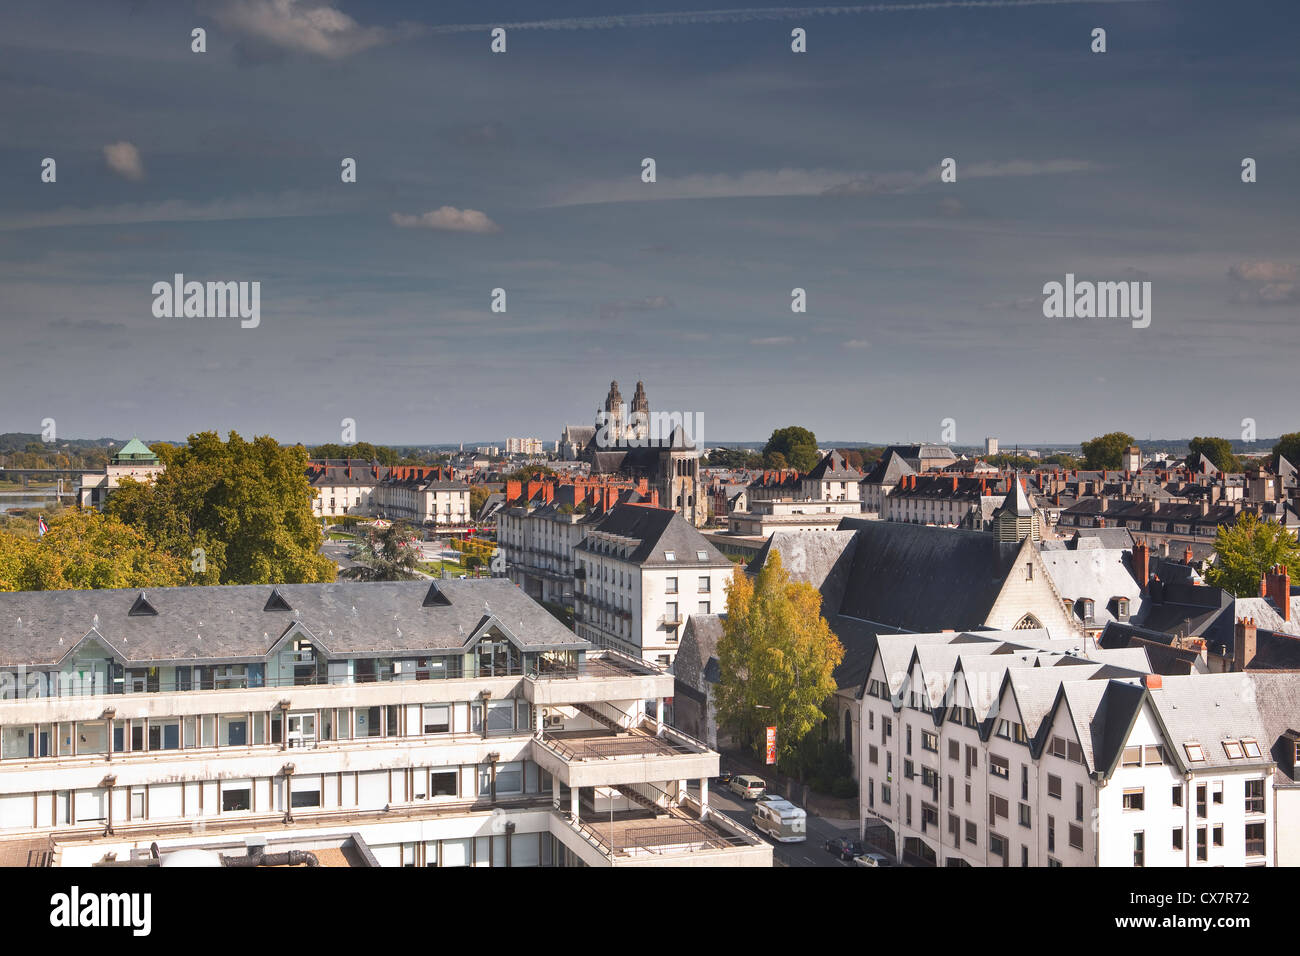 Looking across the rooftops of Tours in France. Stock Photo